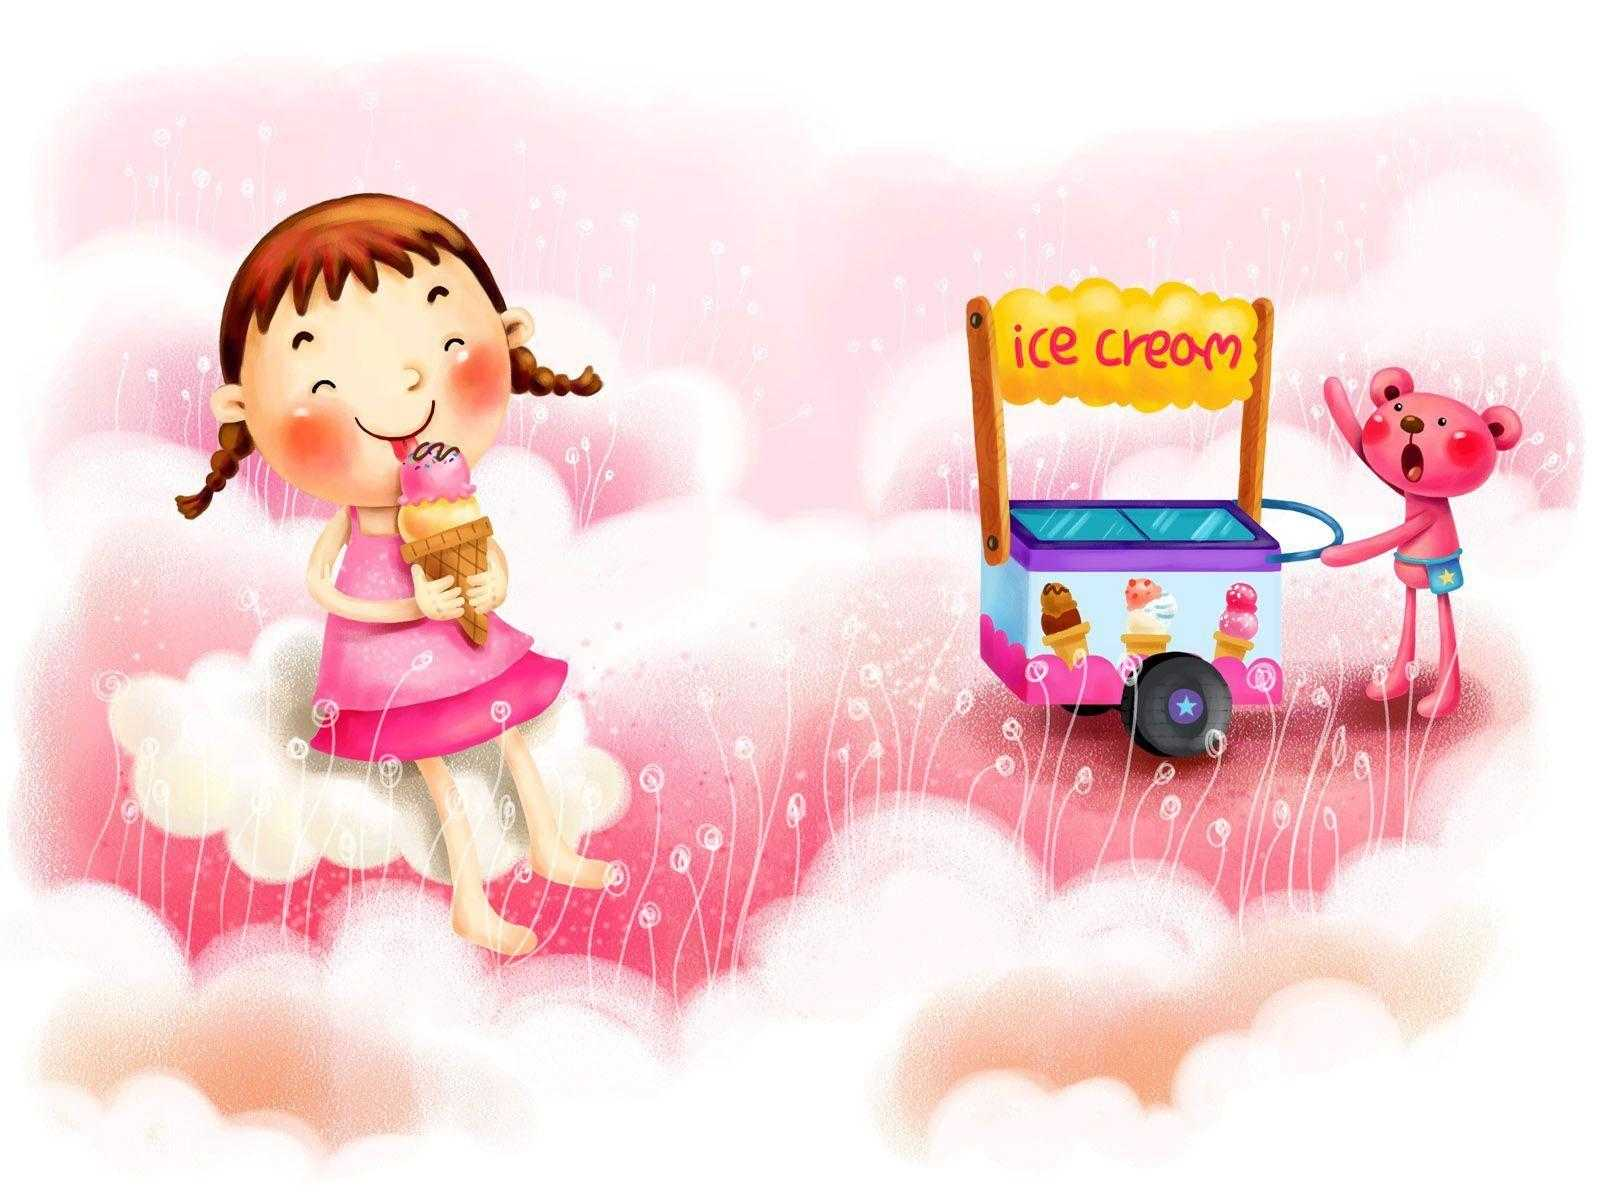 Biggest Collection Of Hd Baby Wallpaper For Desktop And Mobile: Korean Anime Wallpapers